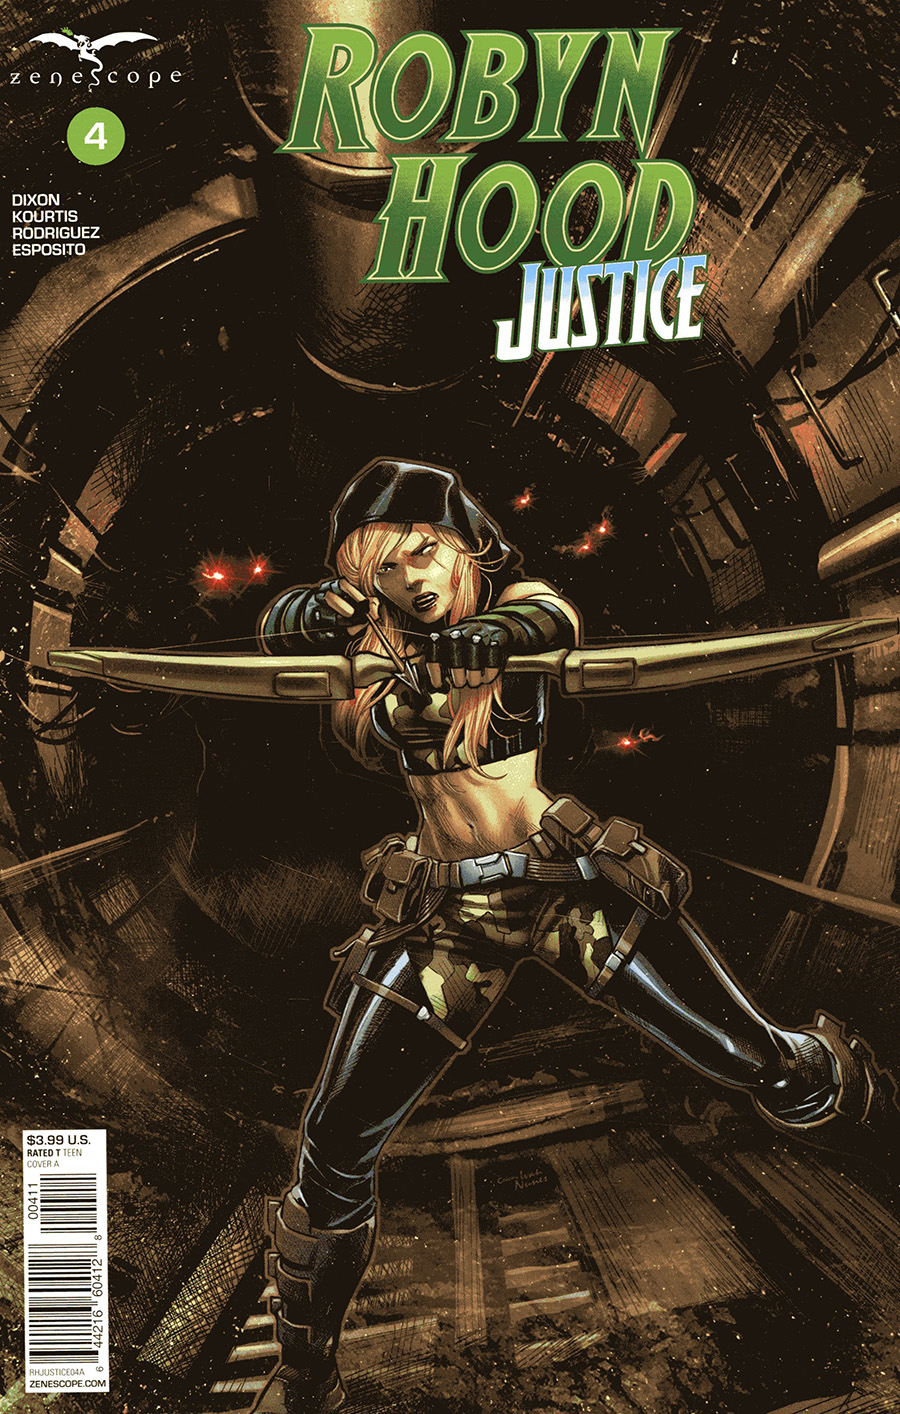 Grimm Fairy Tales Presents Robyn Hood Justice #4 Cover A Martin Coccolo